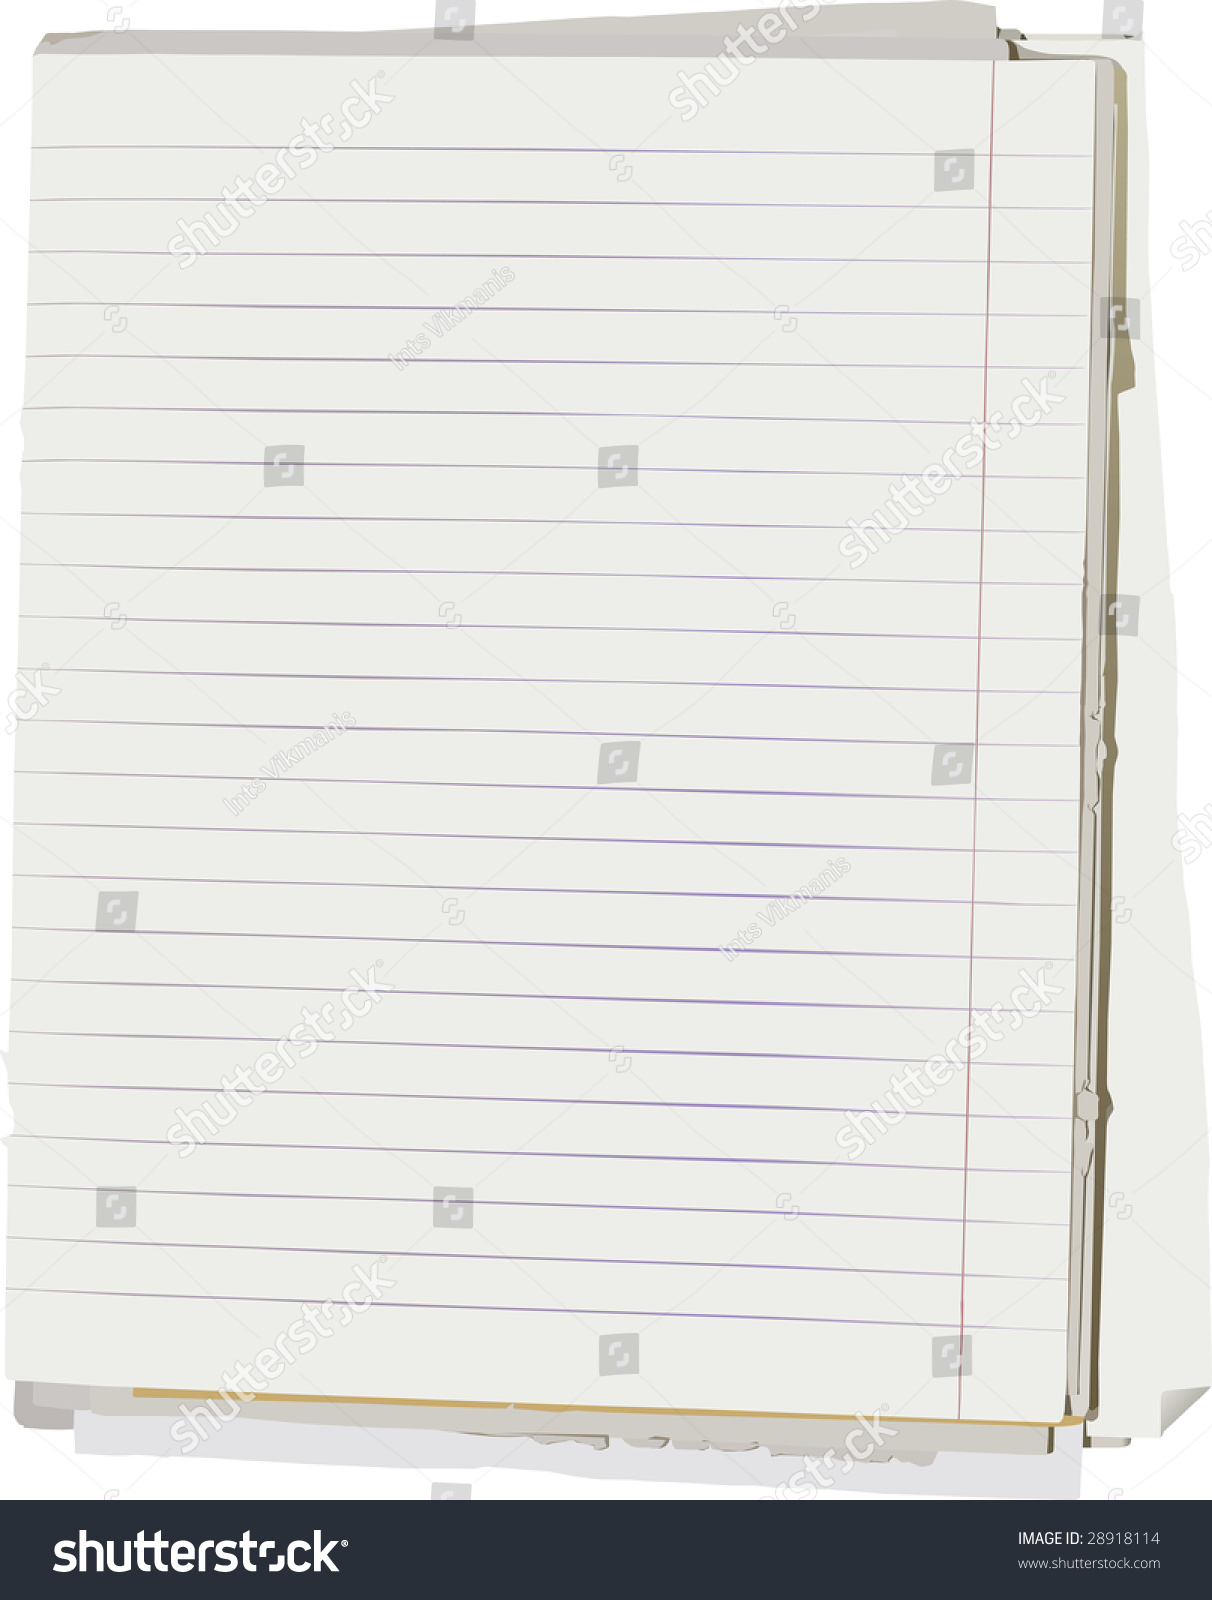 Doc500386 Notepad Paper Template Free Printable Notebook – College Ruled Paper Template